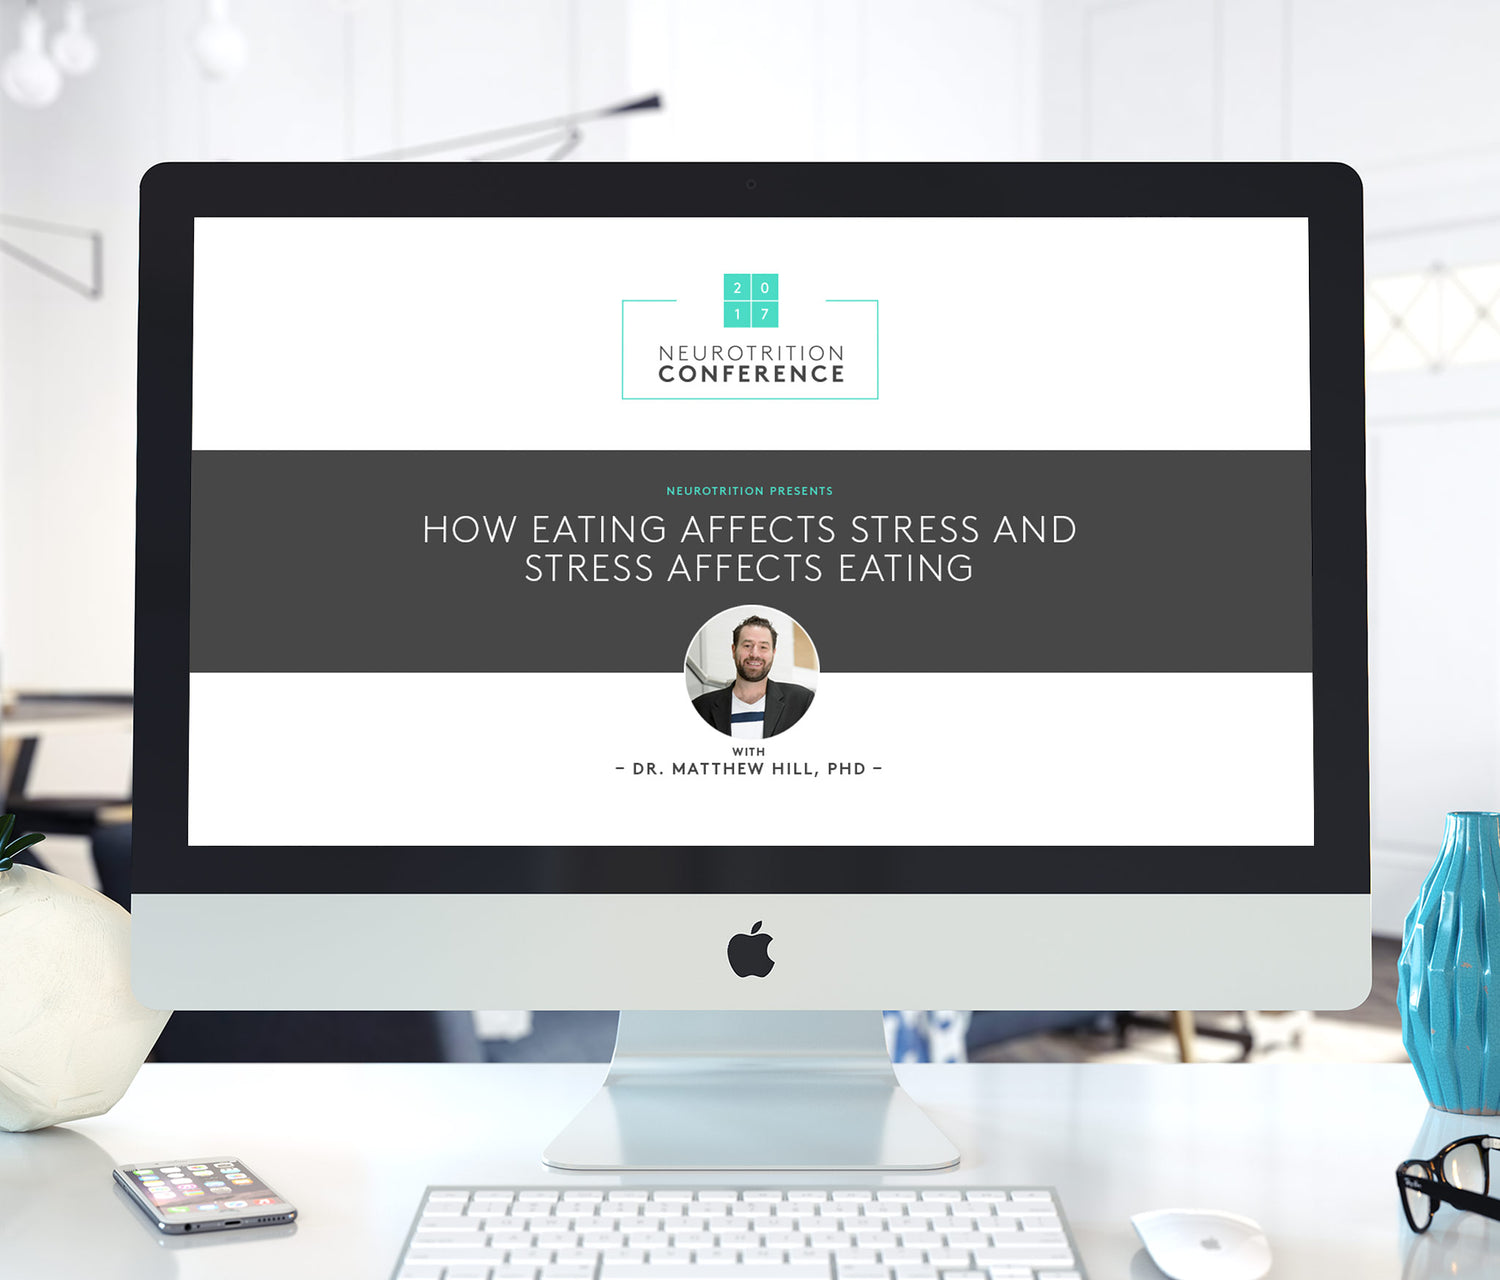 imac with How Eating Affects Stress And Stress Affects Eating video